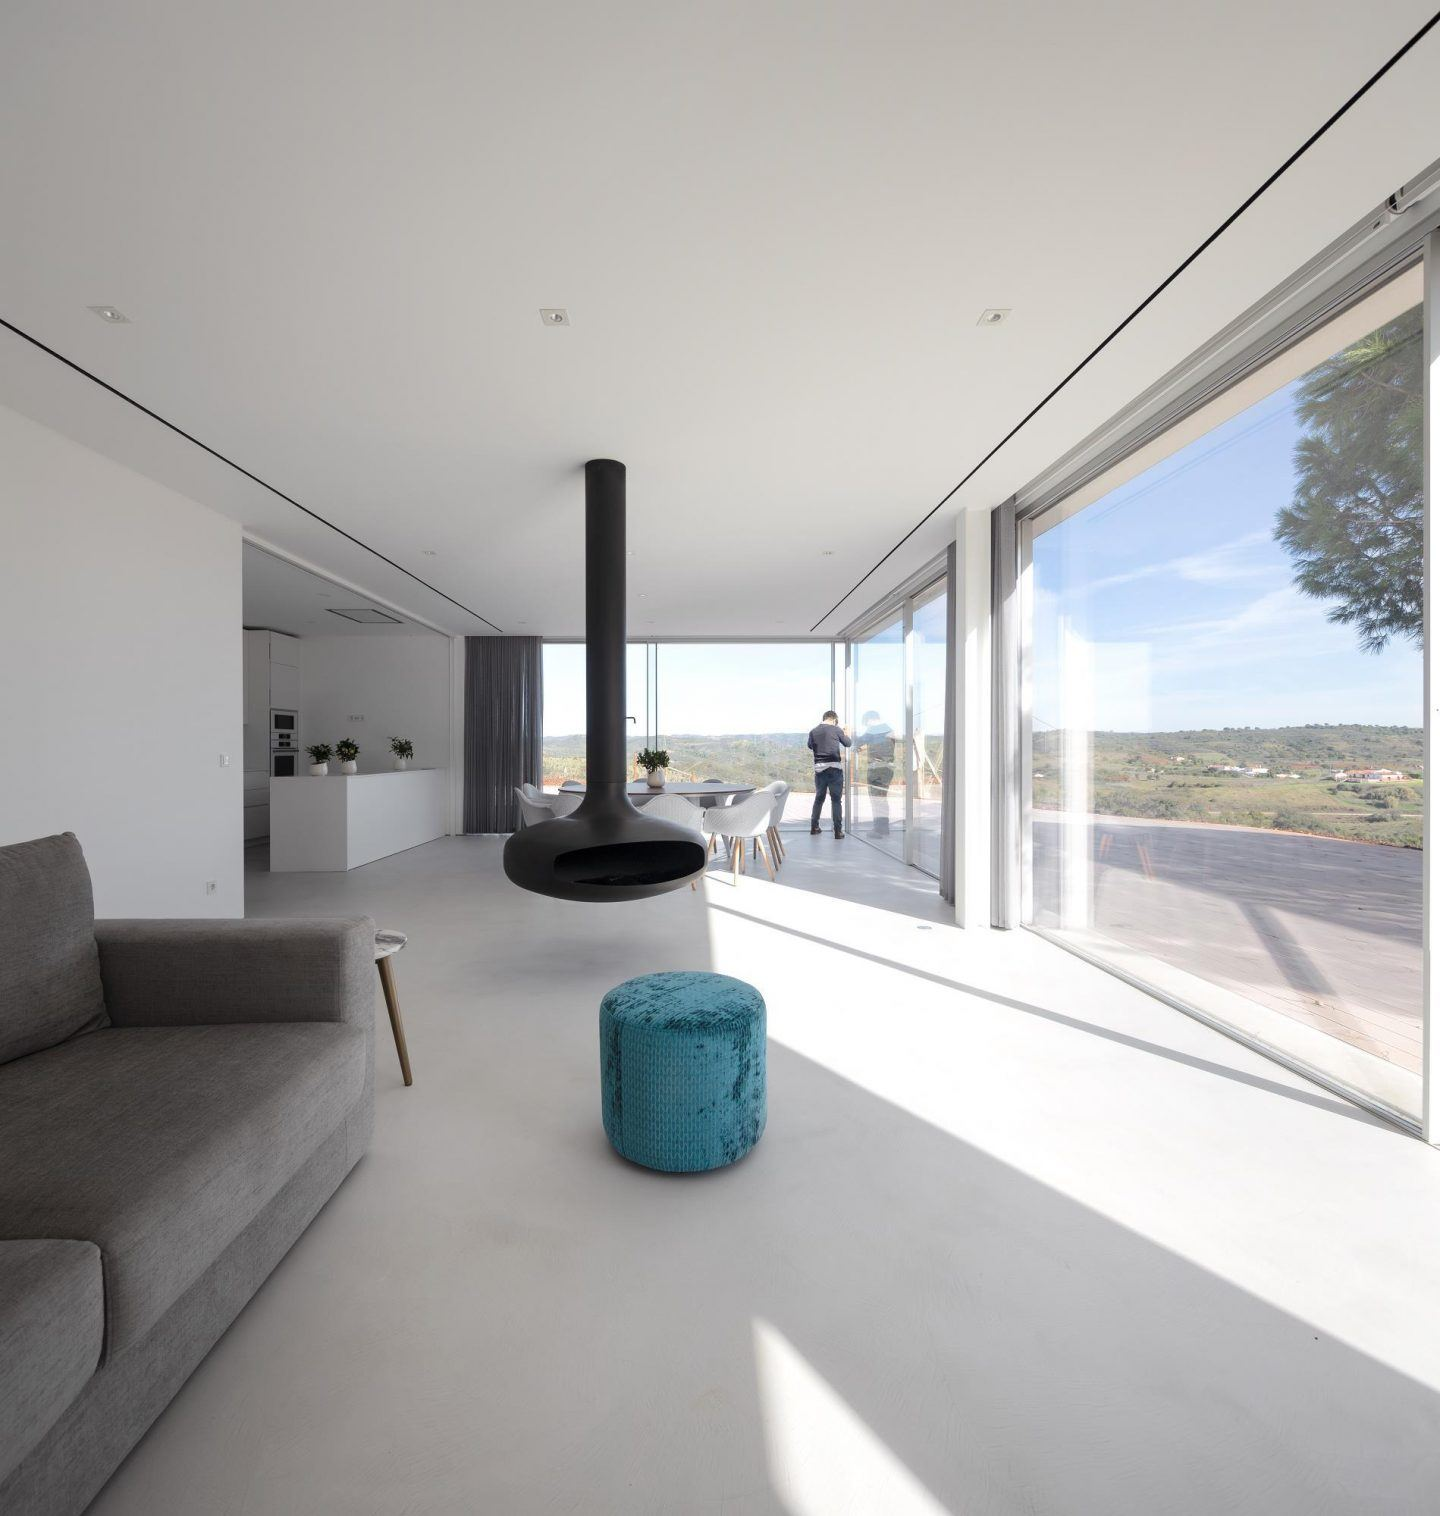 IGNANT-Architecture-Vitor-Vilhena-House-In-Messines-27